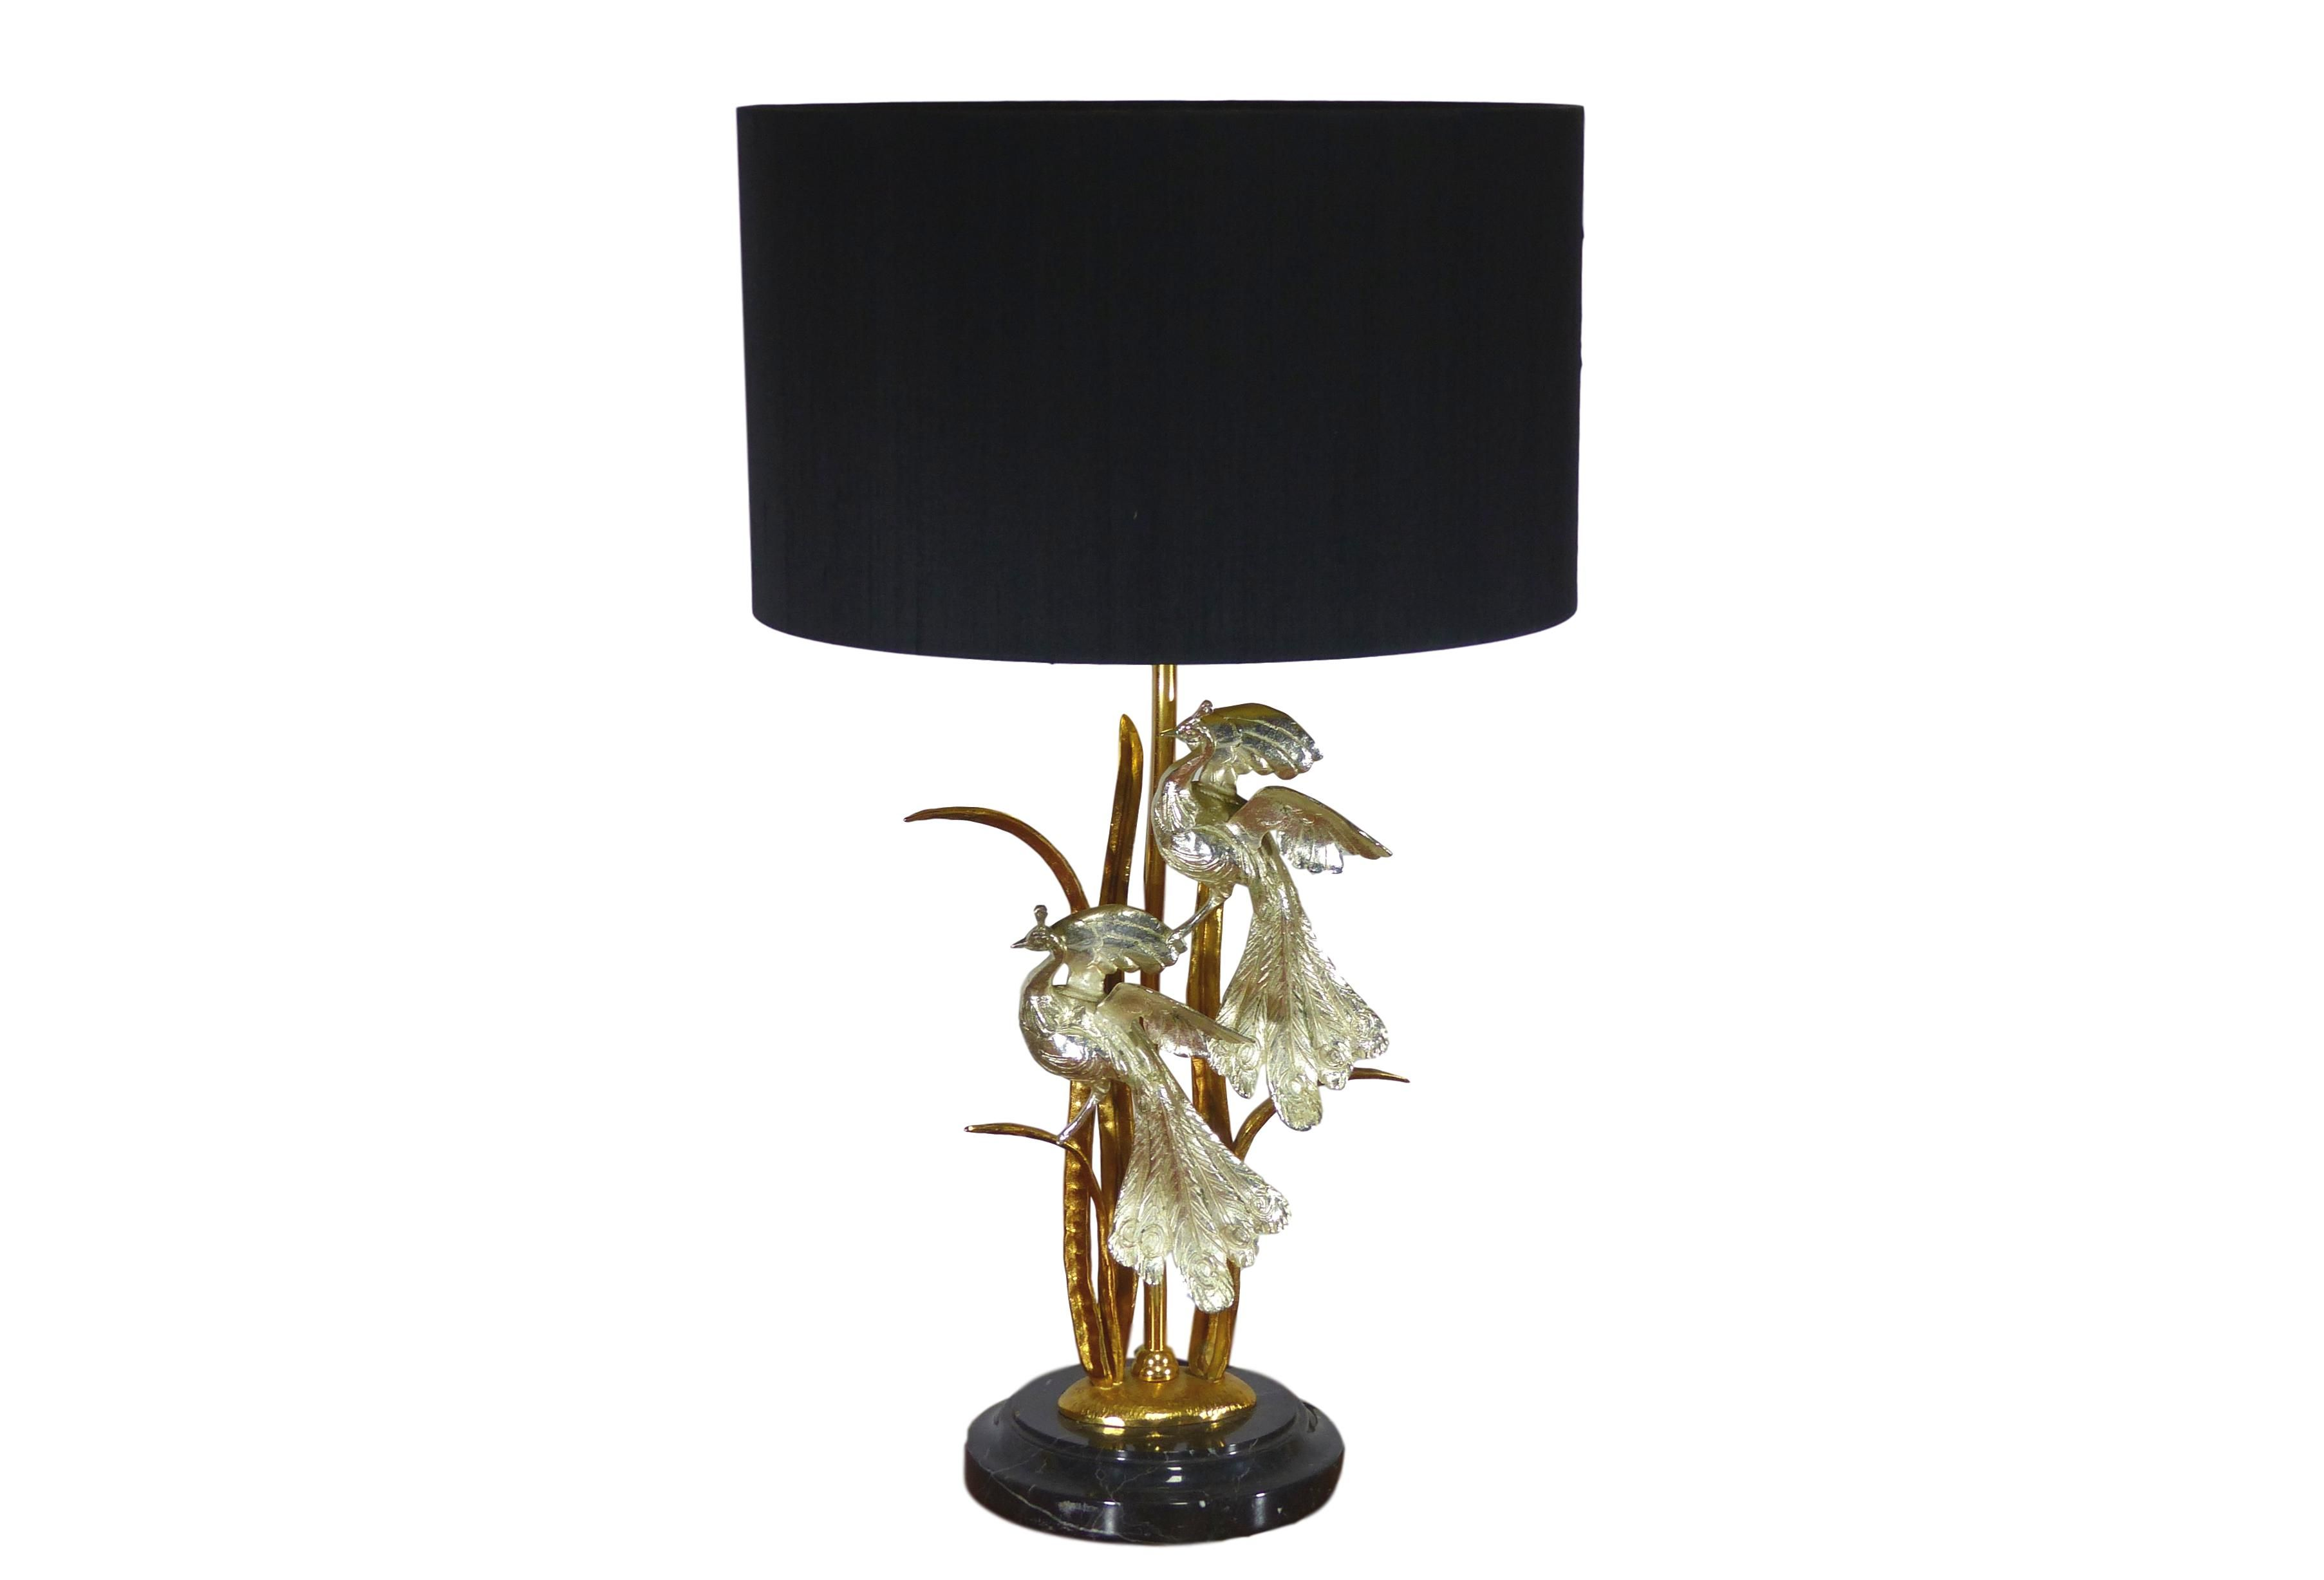 Vintage Brass And Marble Table Lamp Design Market